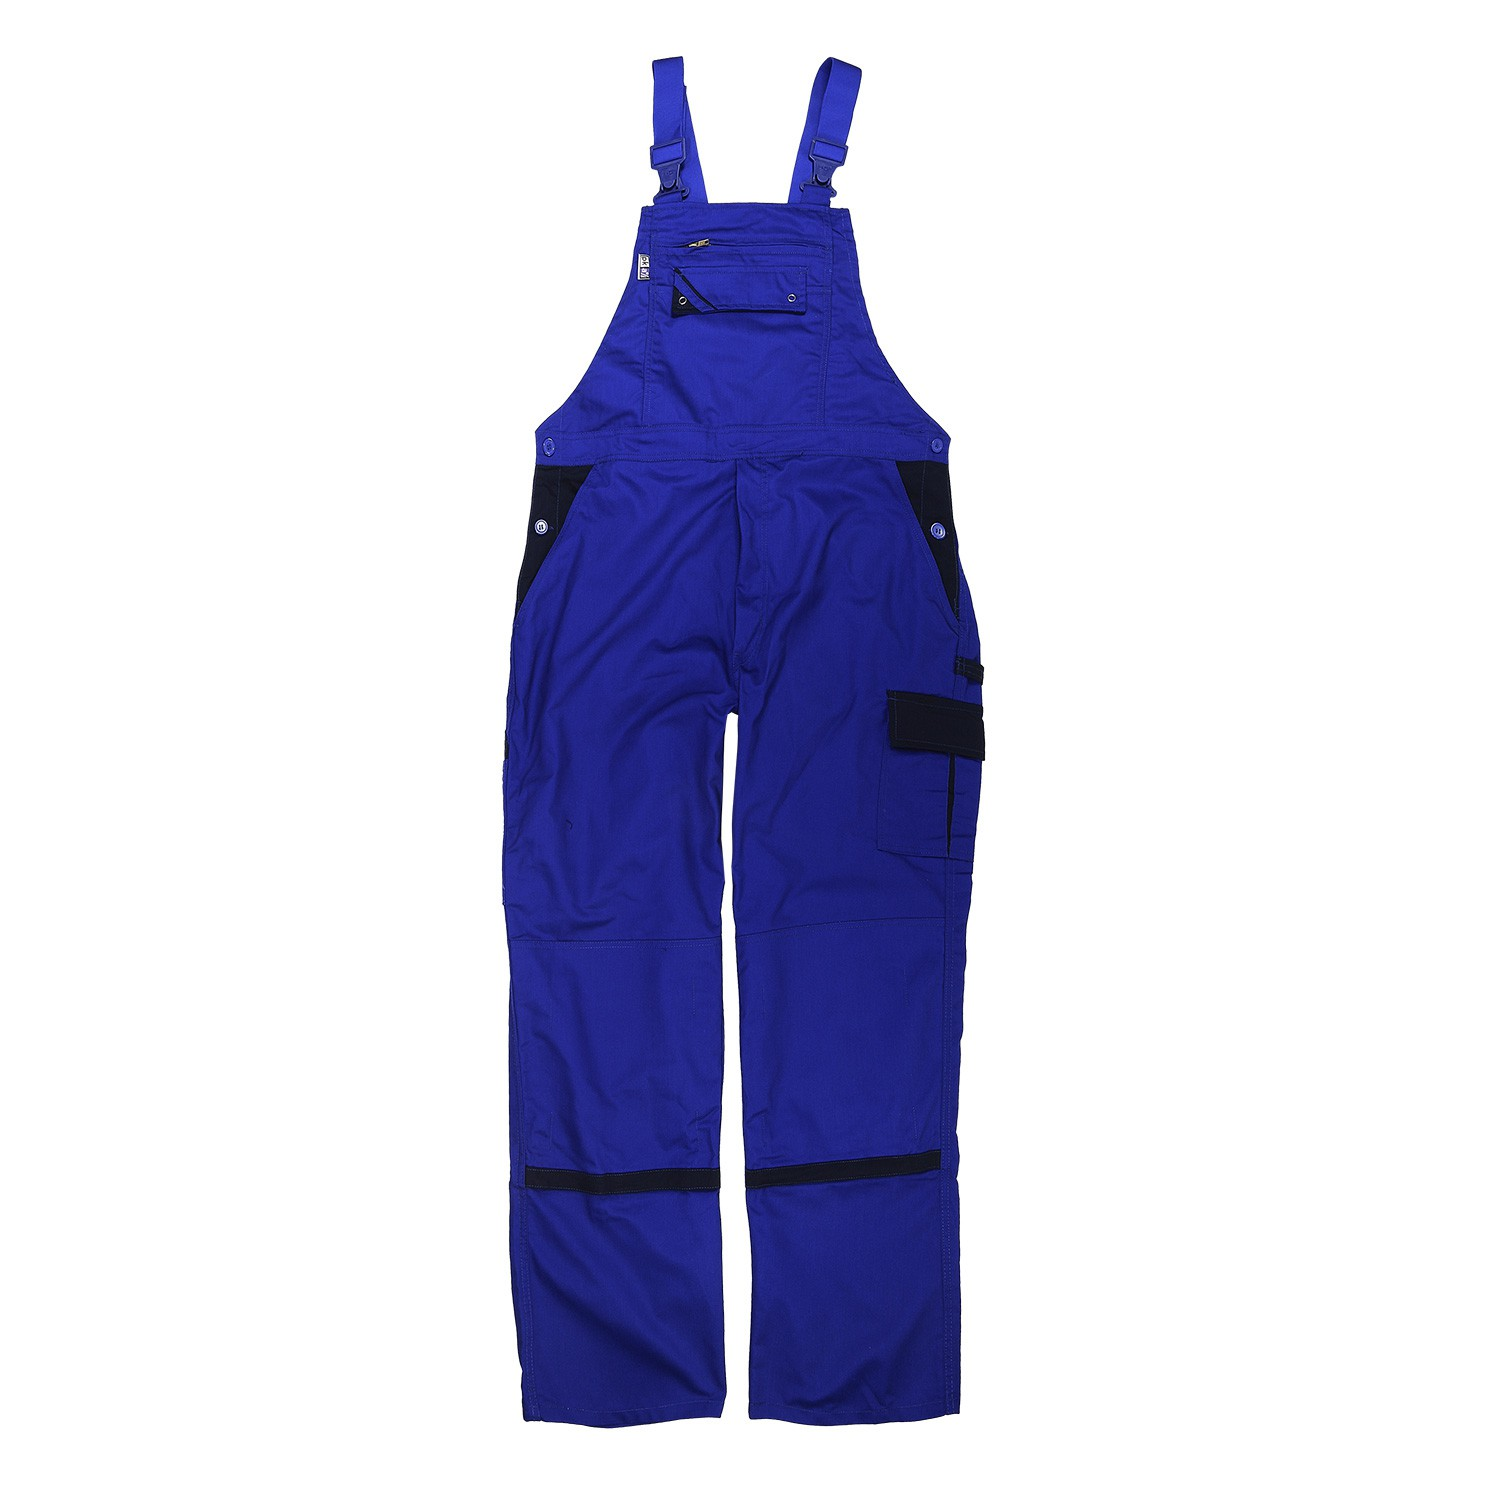 Detail Image to Workingclothes, Pants by PKA Klöcker in blue, large sizes up to 74